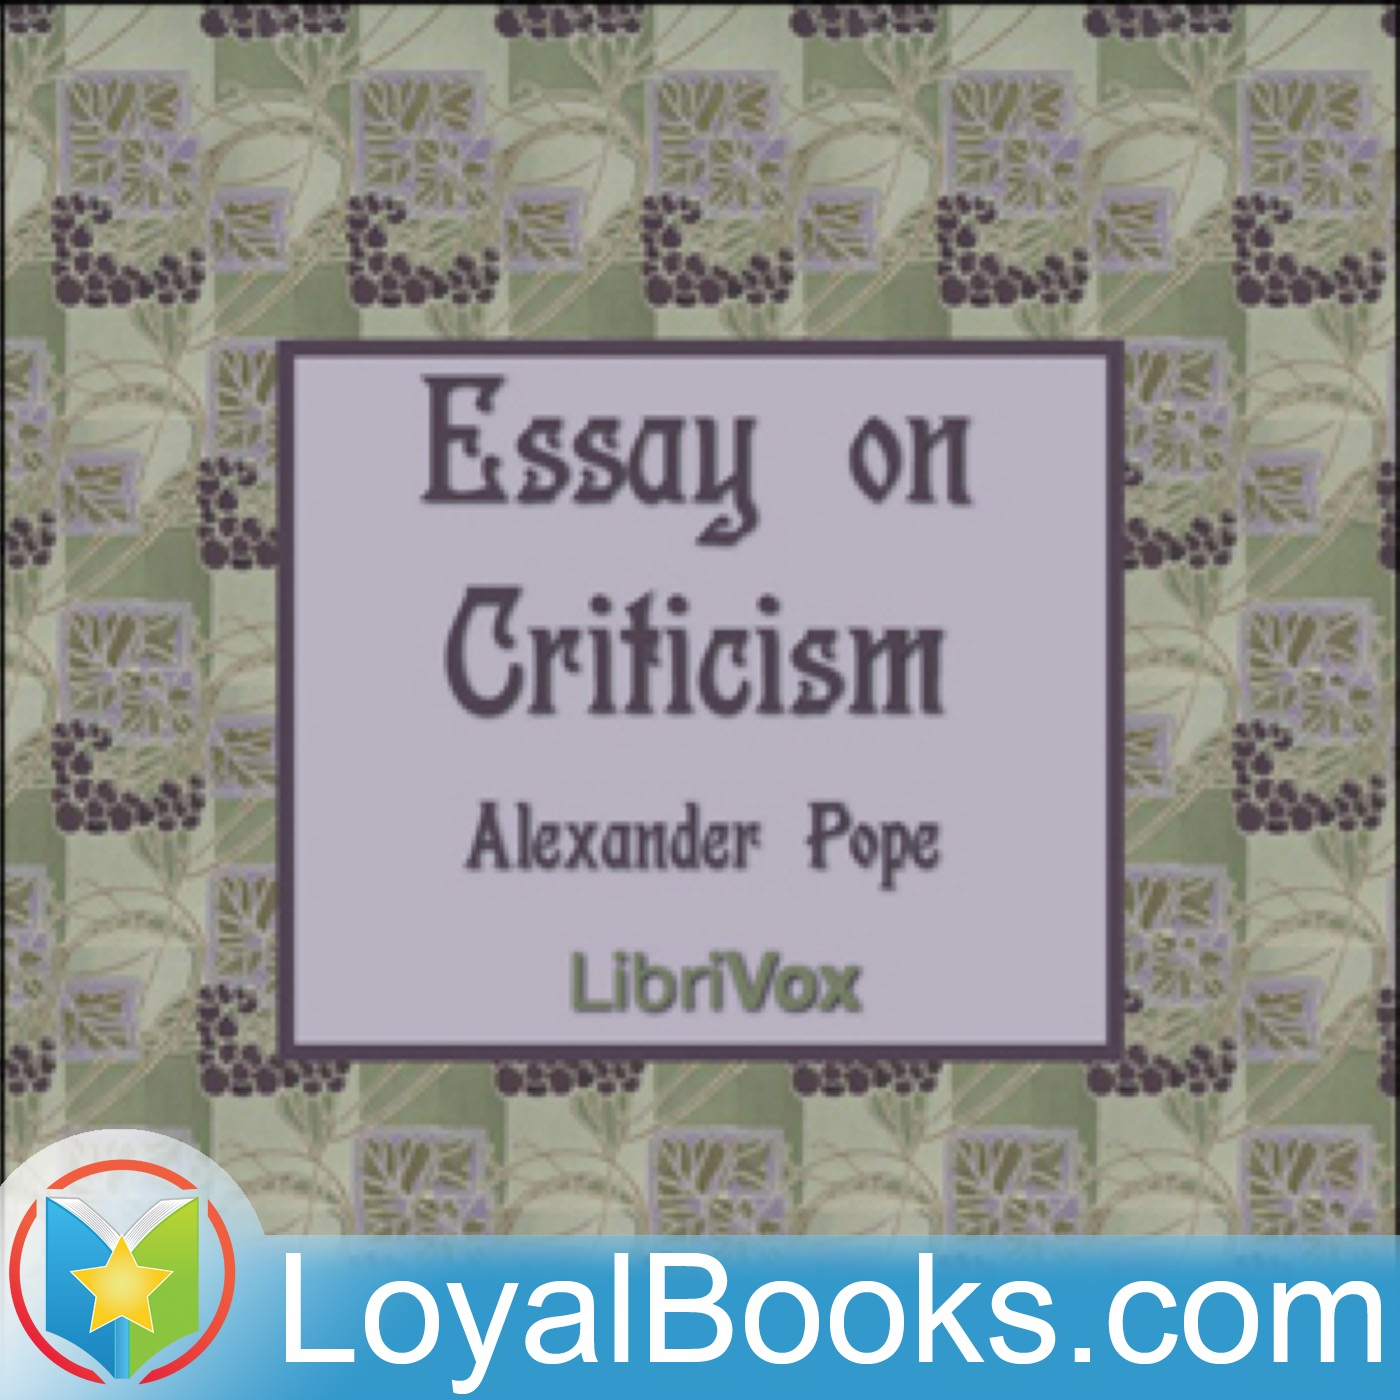 014 Essay On Criticism By Alexander Pope An Sensational Lines 233 To 415 Part 3 Analysis Pdf Full